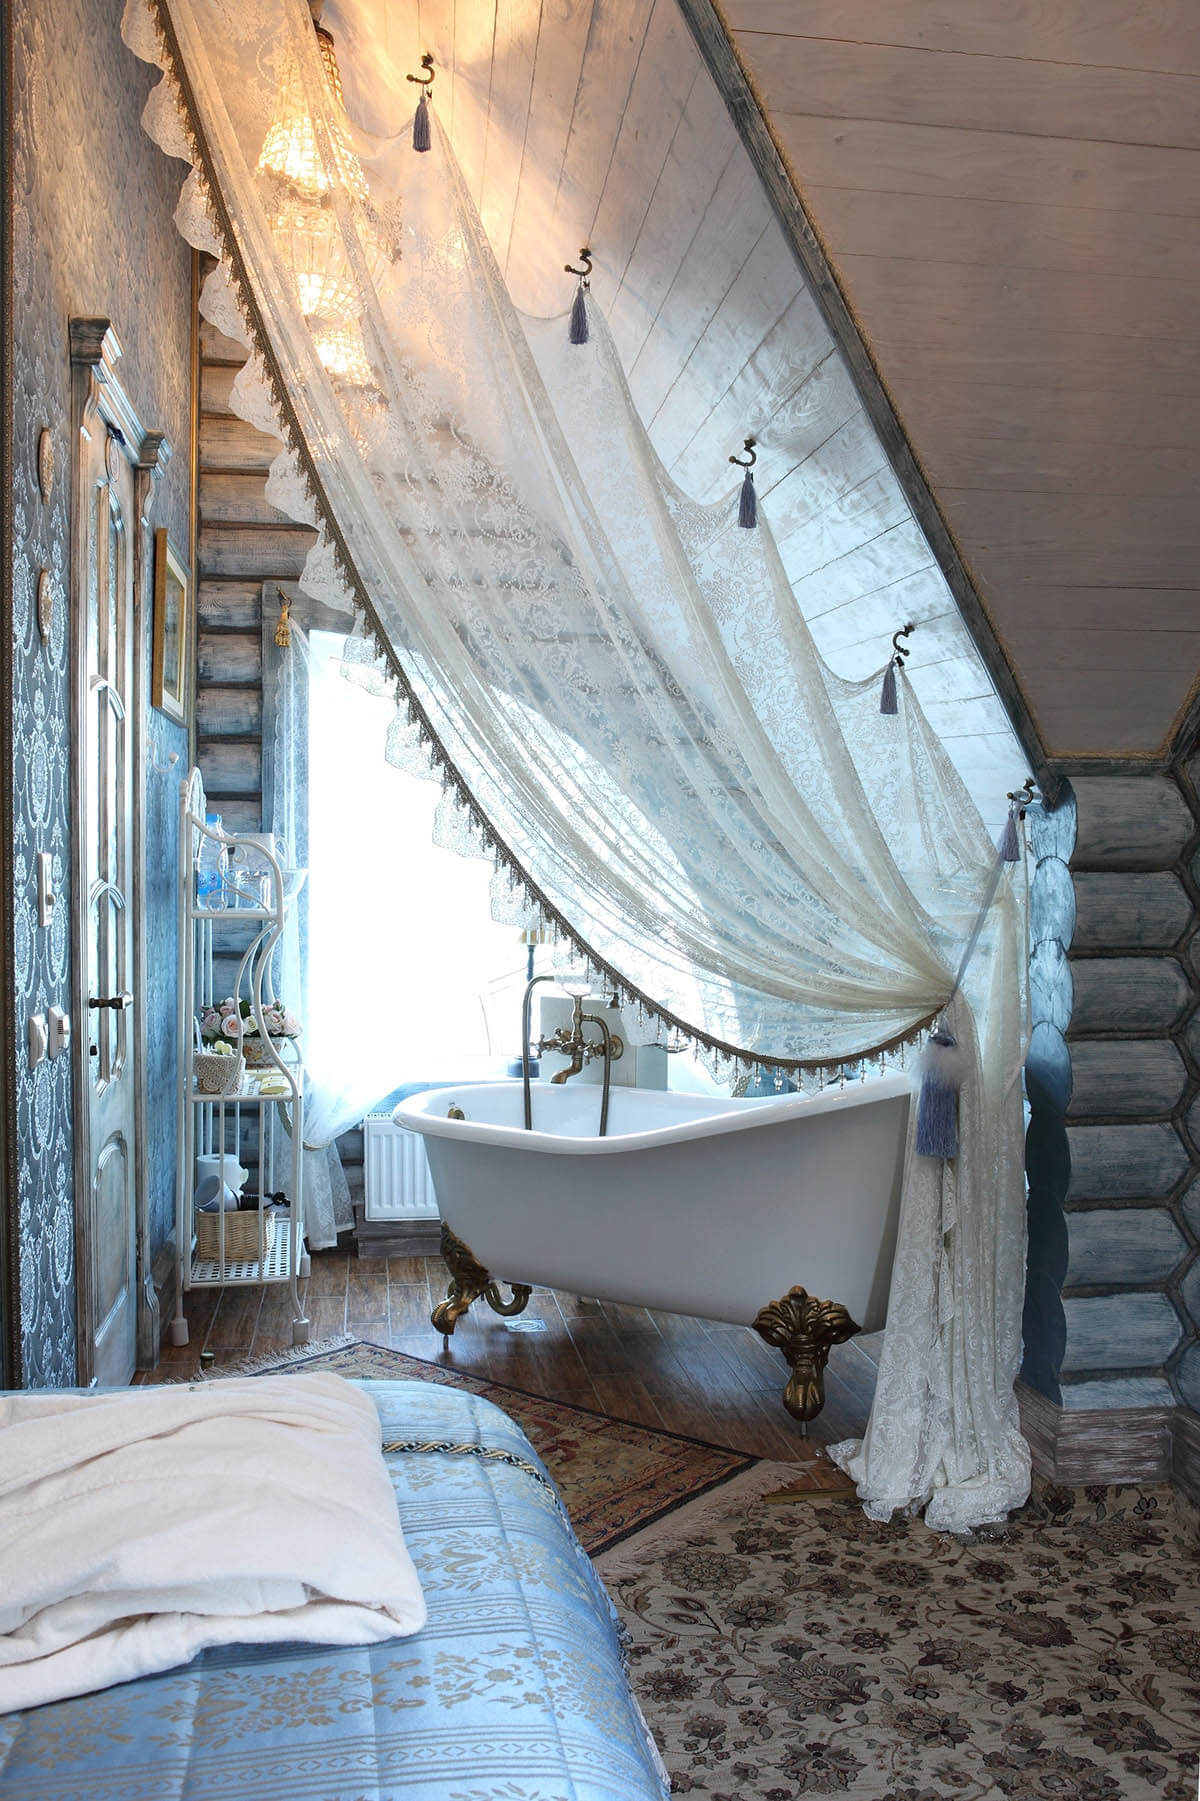 Dramatic Lace Bath Tub Privacy Curtain